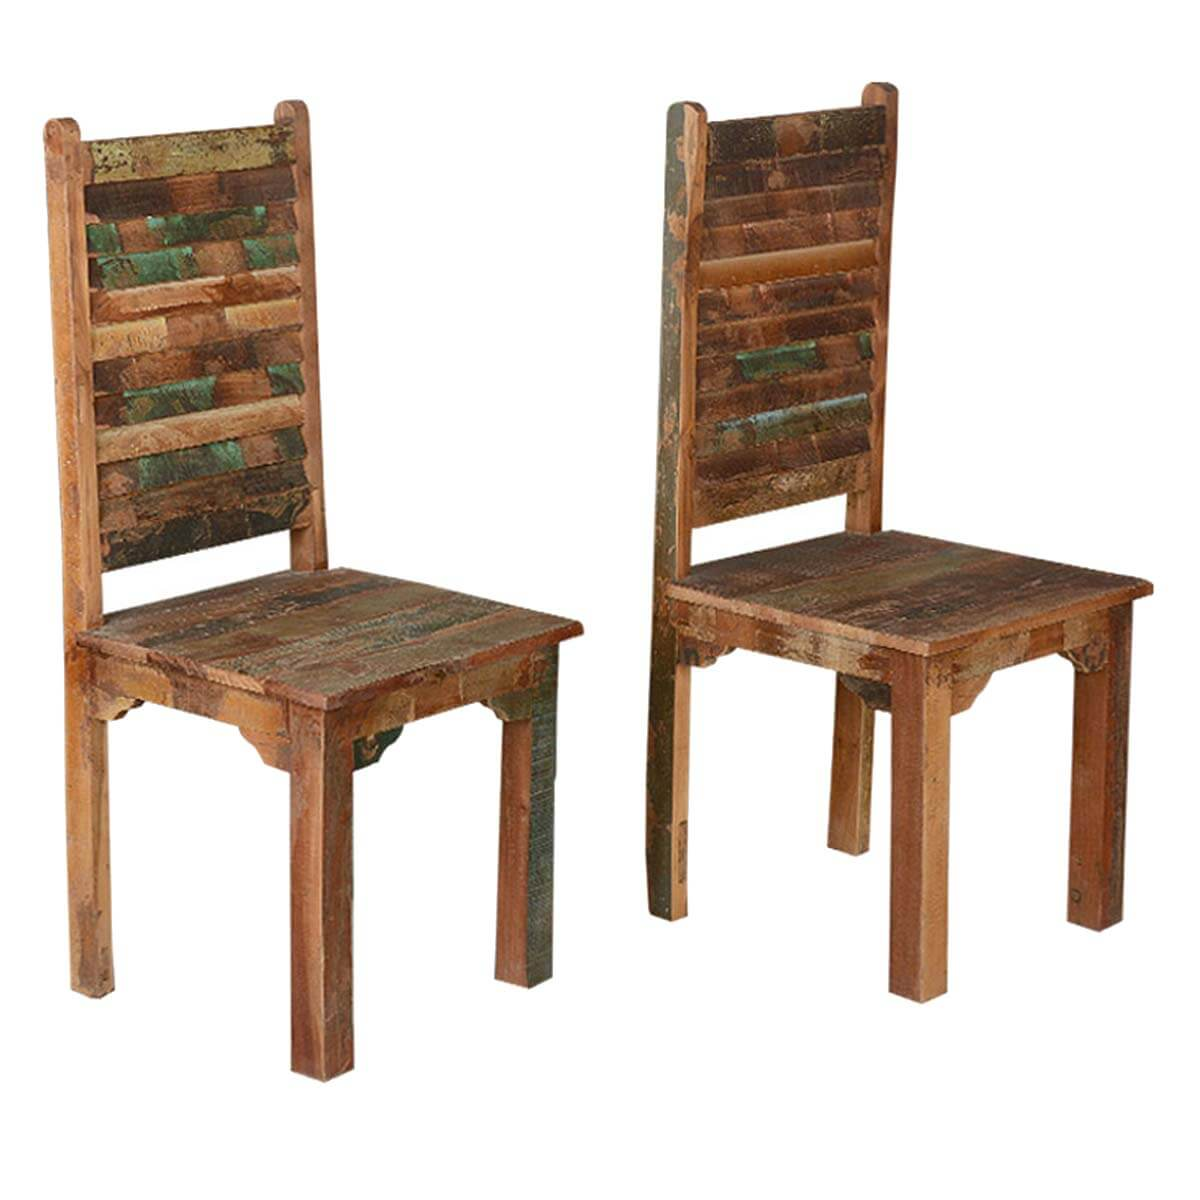 Lovely Rustic Distressed Reclaimed Wood Multi Color Dining Chairs Set Of 2